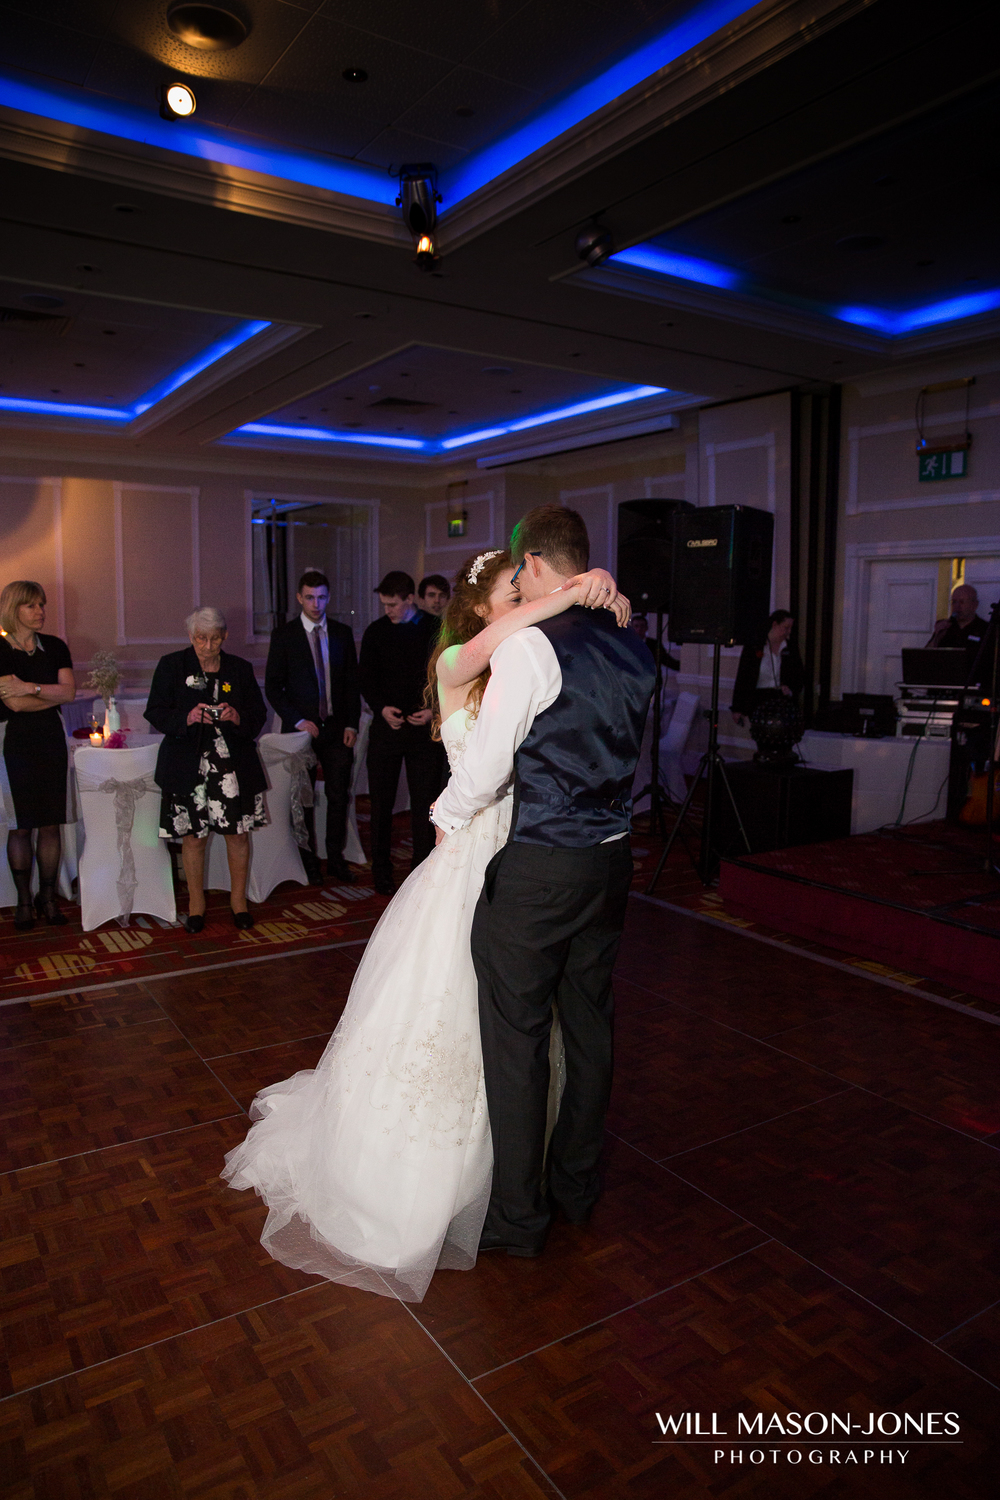 marriottwedding-192.jpg